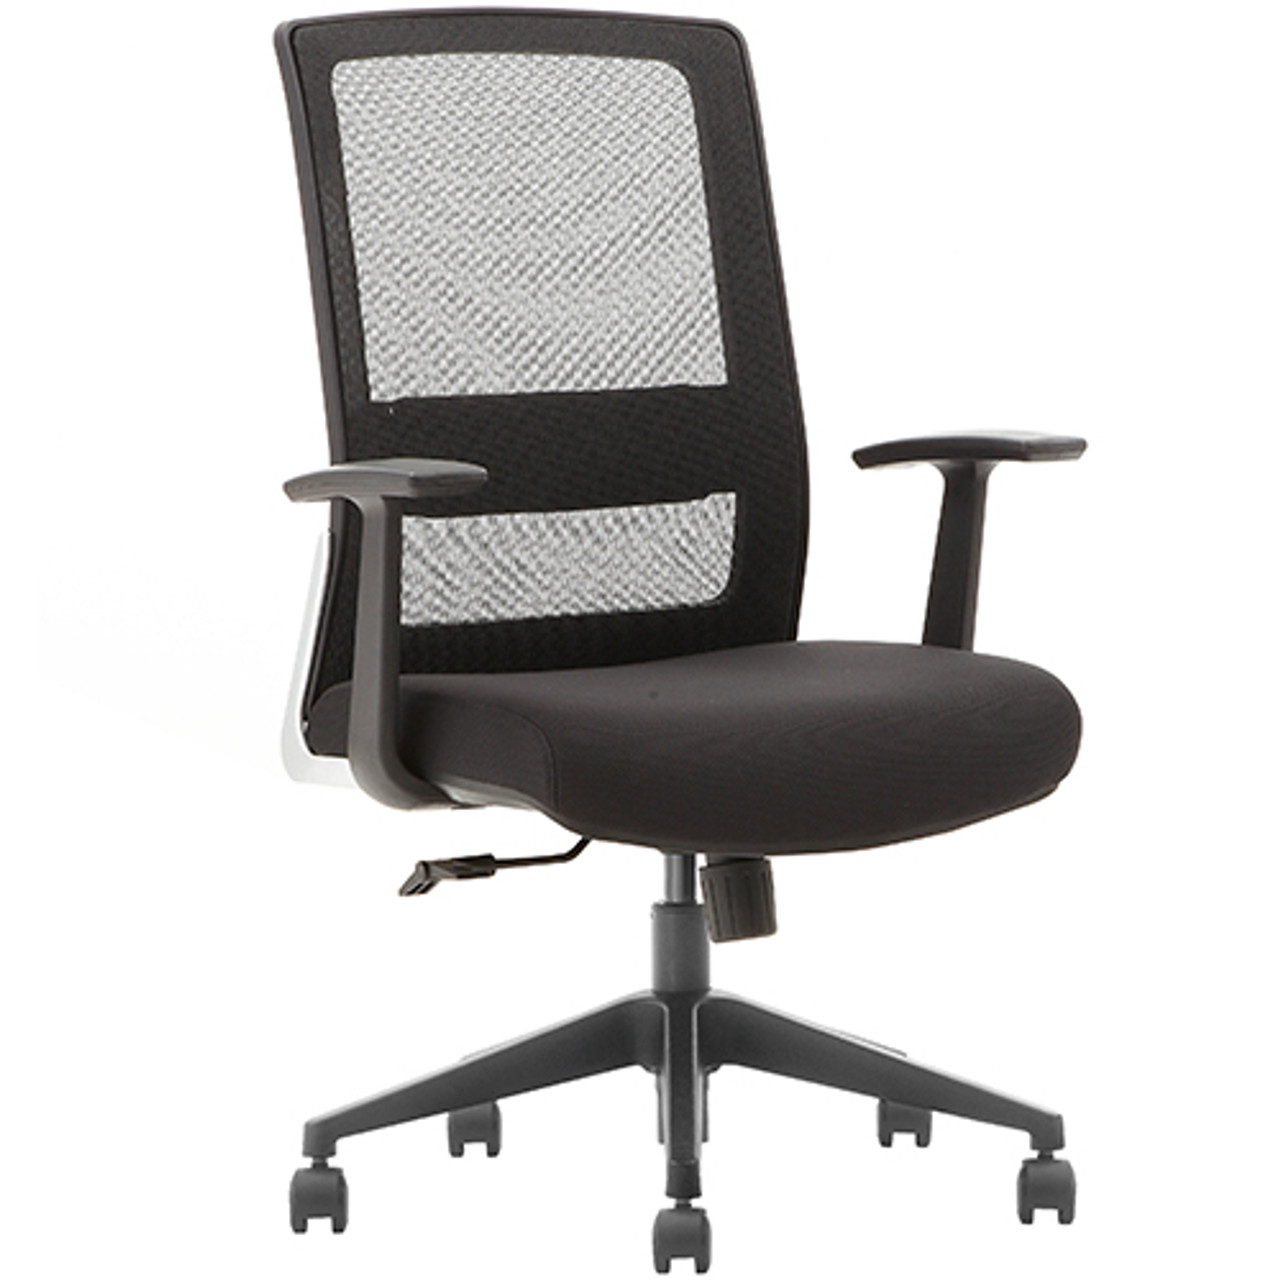 Black Mesh Office Chairs X1 01be Mf Office Furniture Office Chairs For Sale